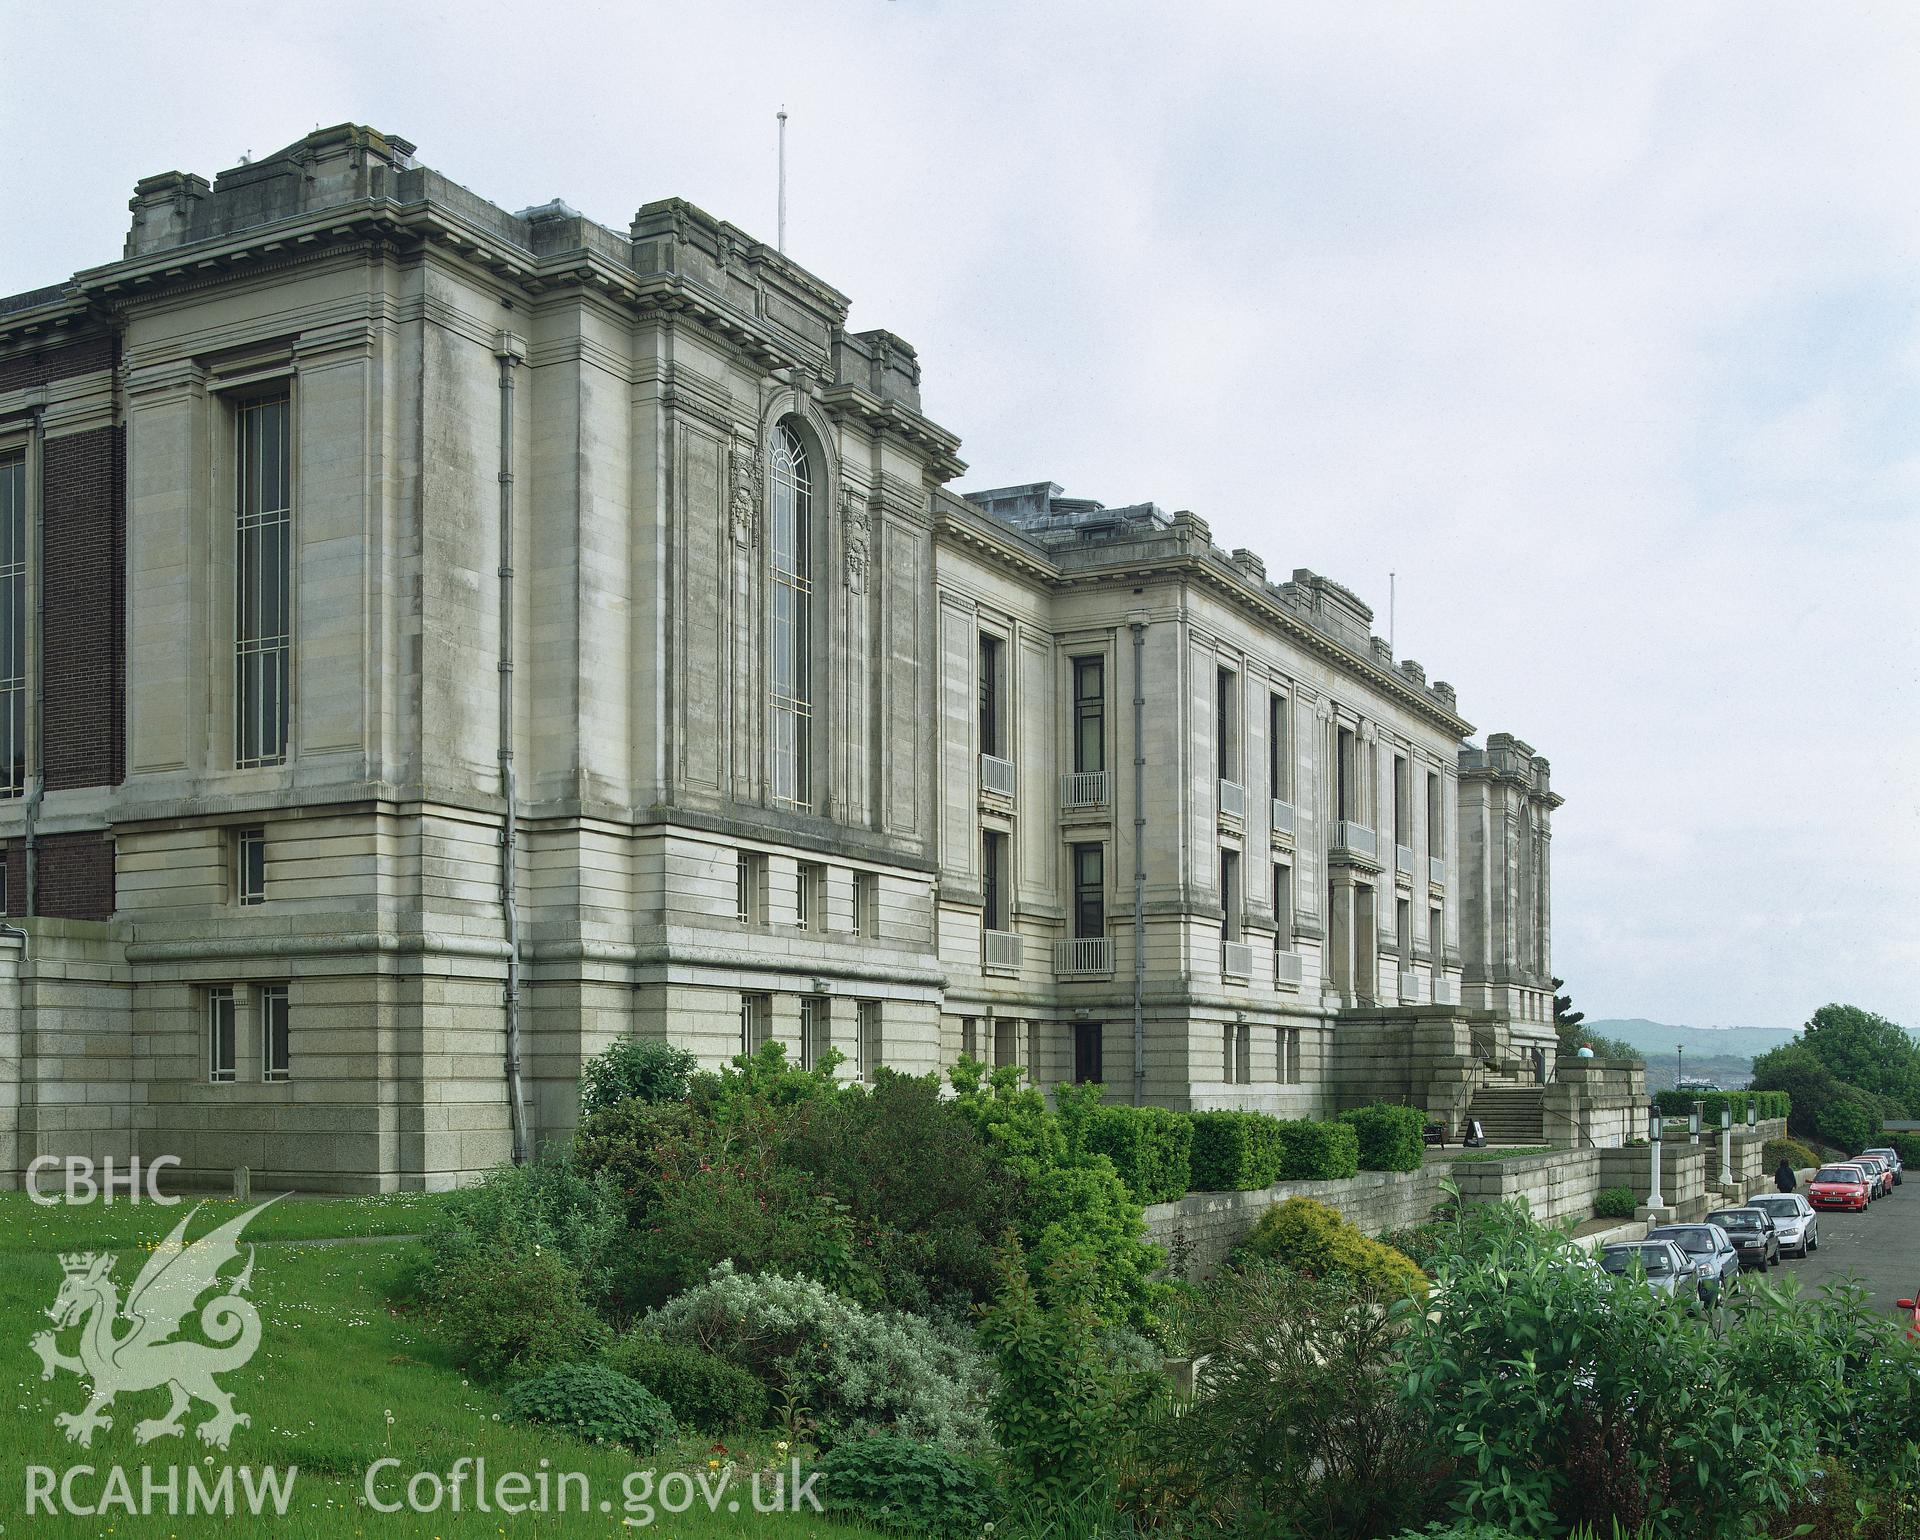 RCAHMW colour transparency showing exterior view of National Library of Wales, Aberystwyth